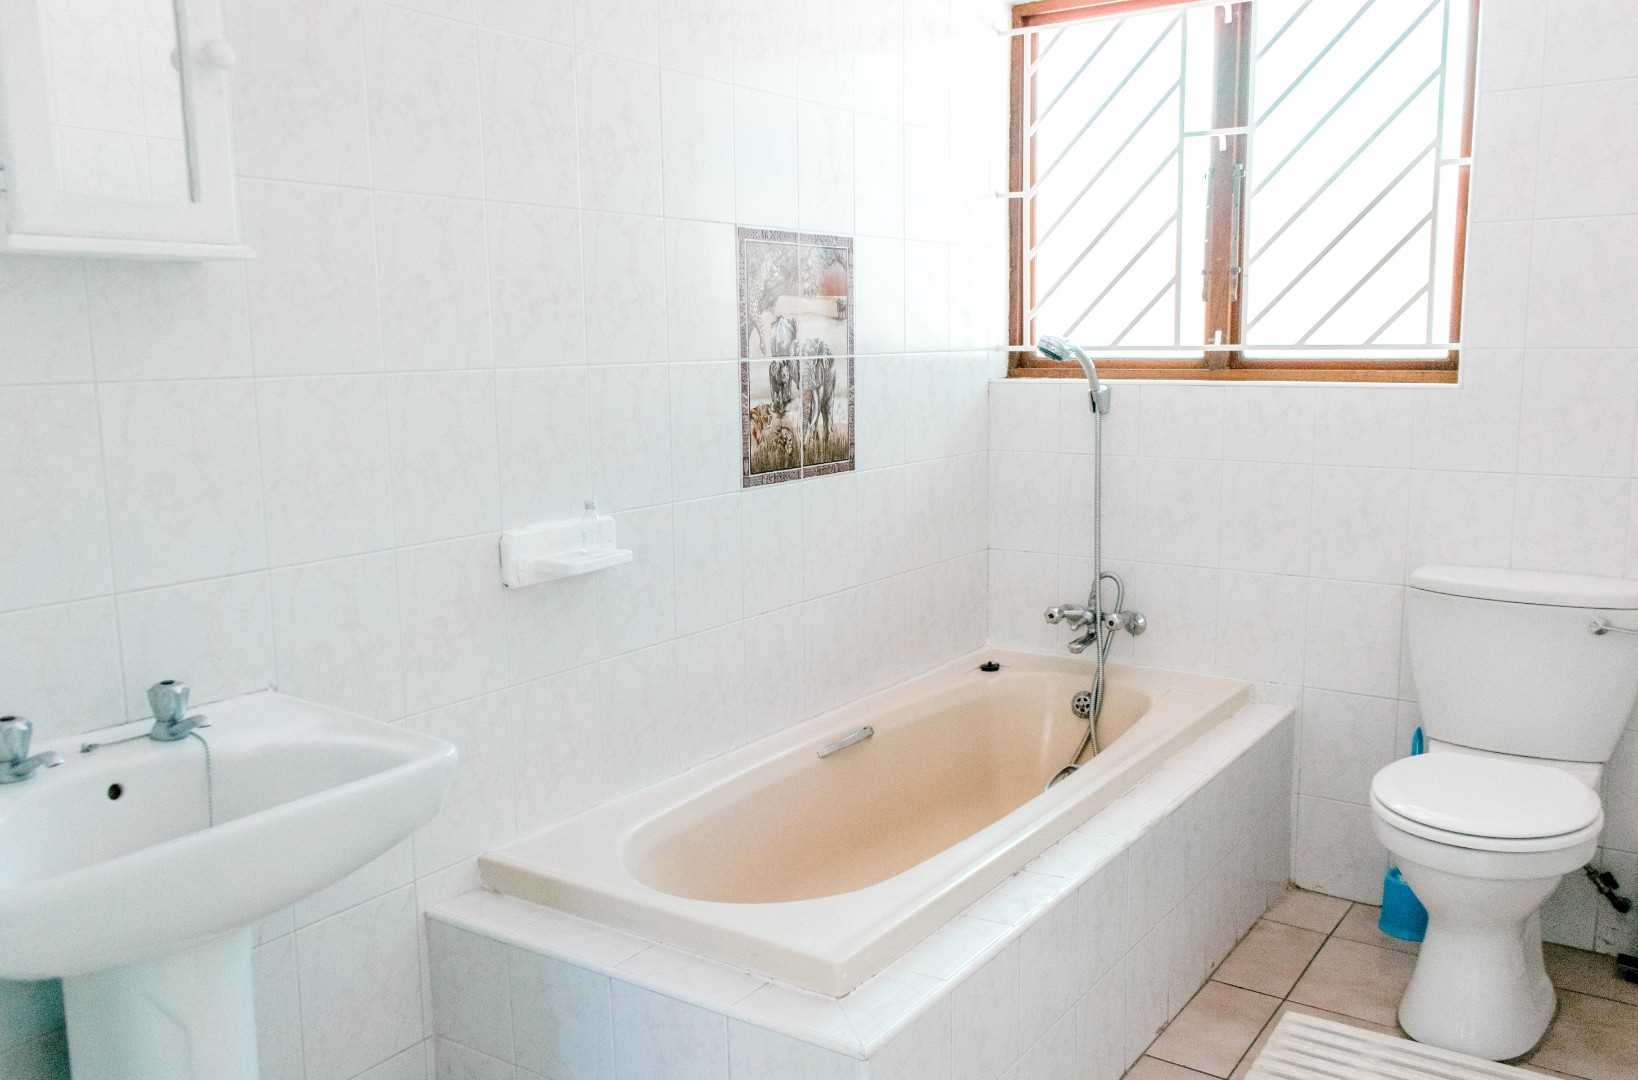 Unit's bathroom